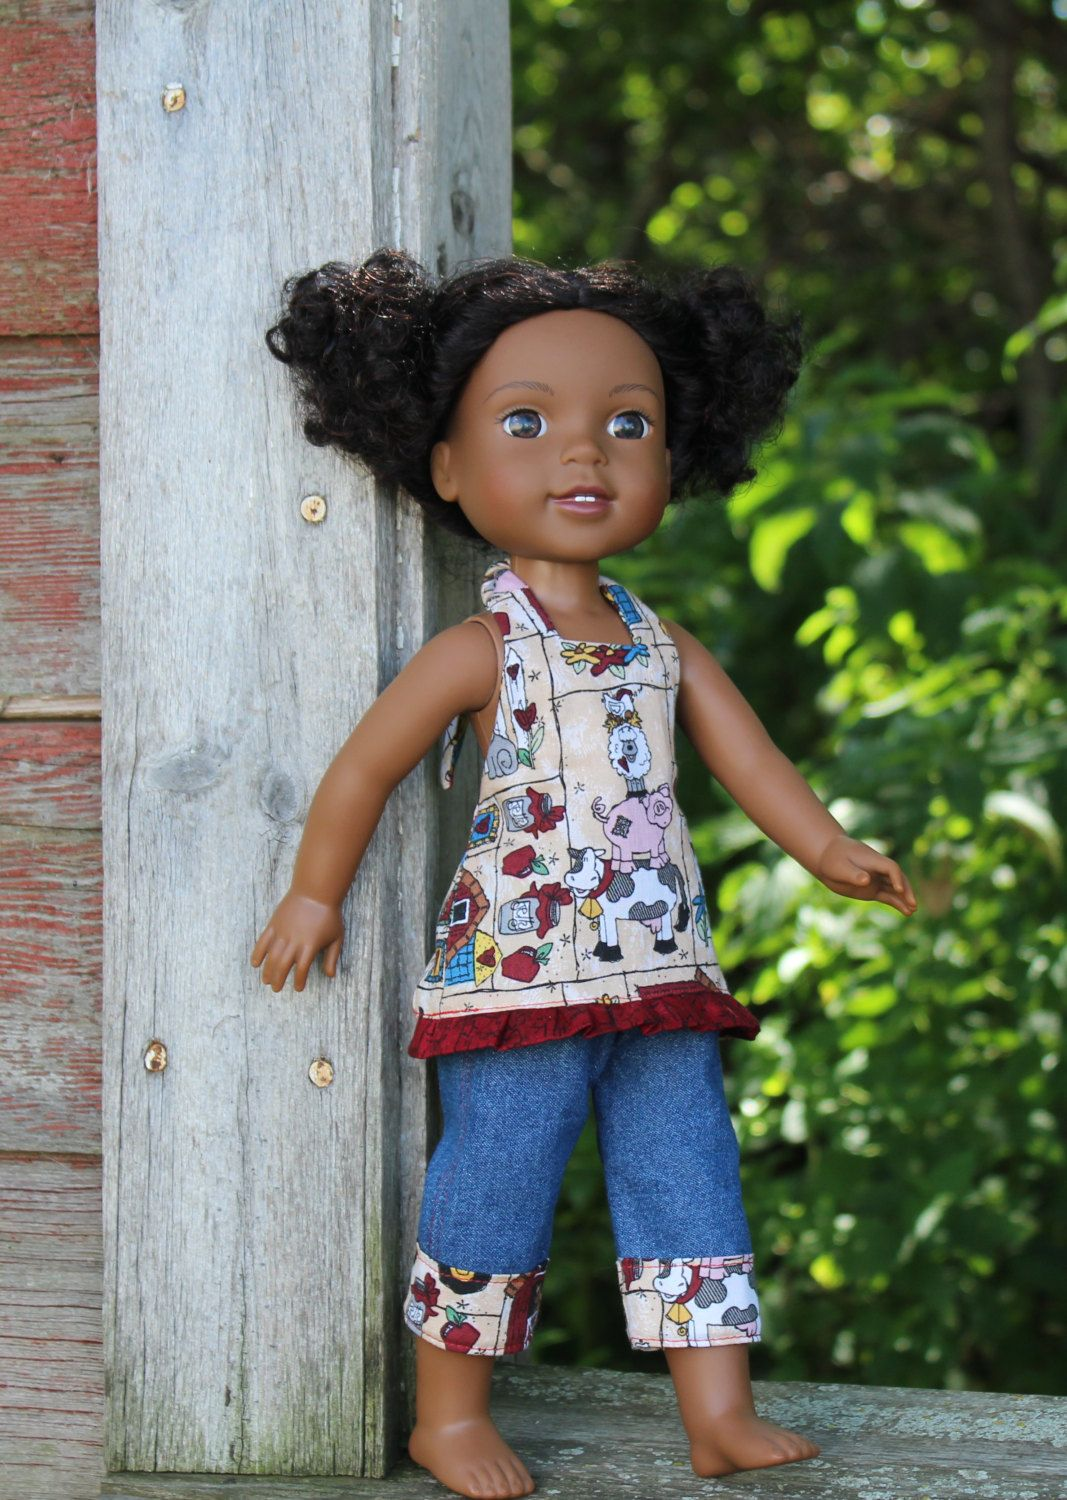 Play Clothes for the 14 inch dolls such as WellieWishers Halter top and Capri Denim pants by AmyViolets on Etsy